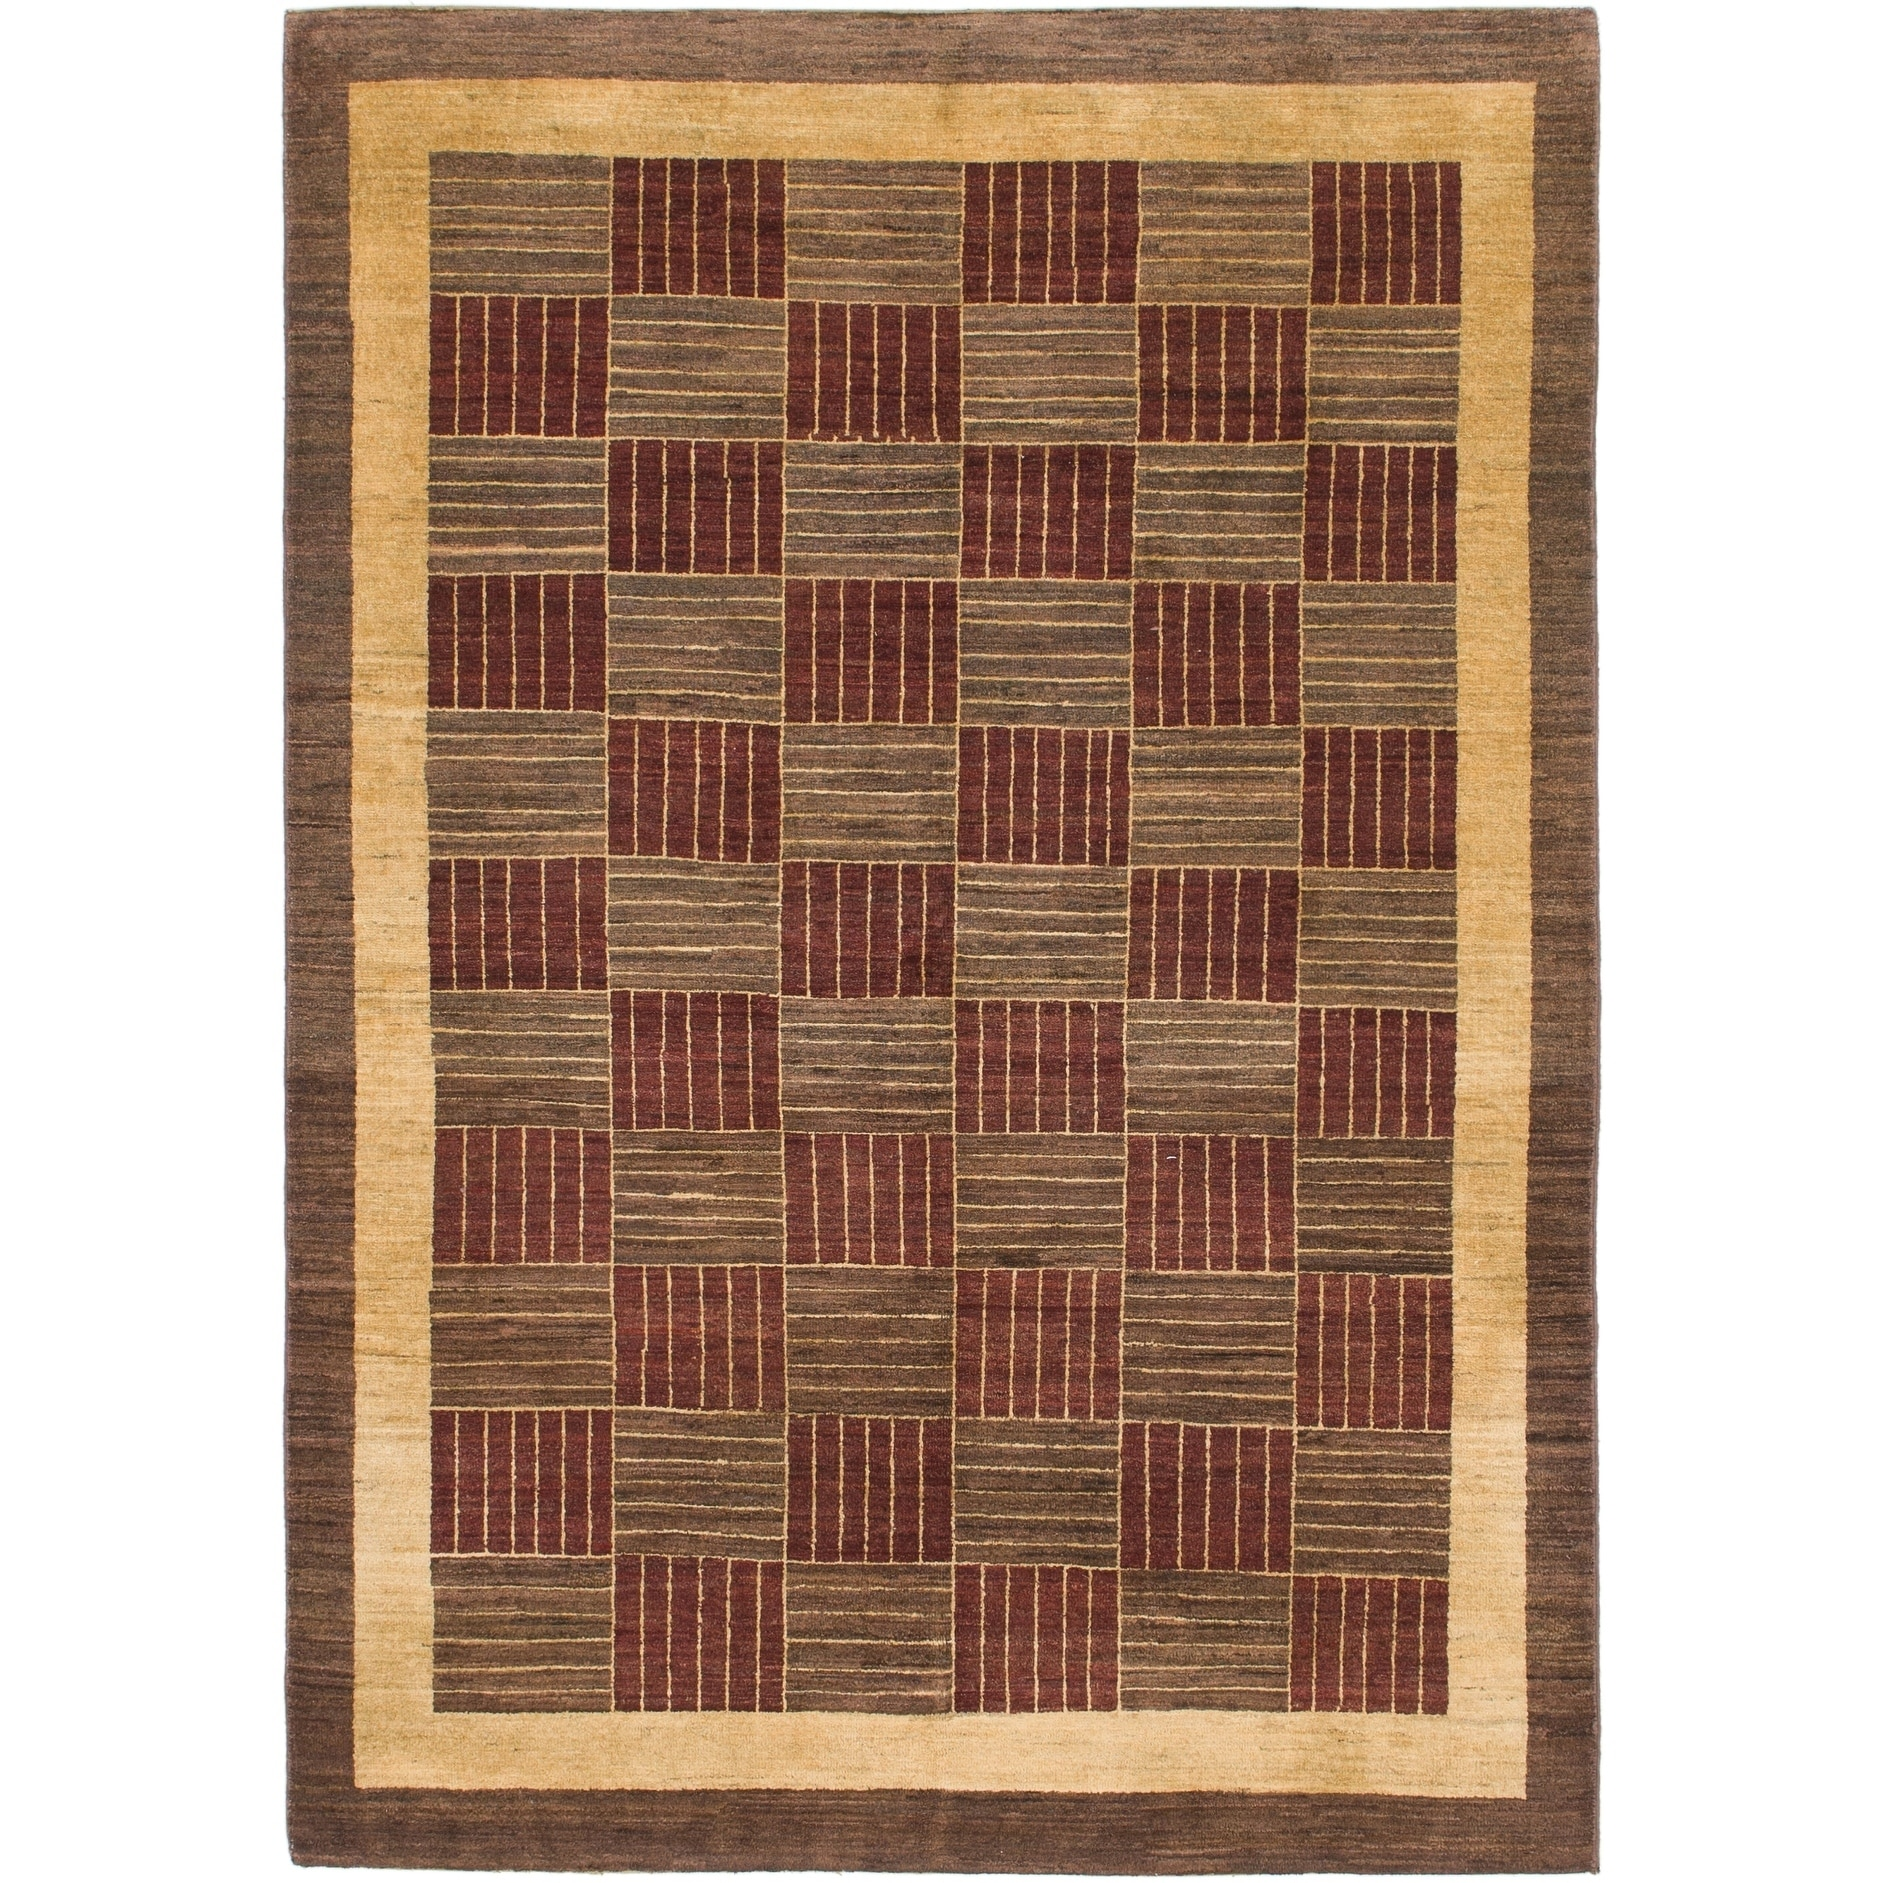 Hand Knotted Kashkuli Gabbeh Wool Area Rug - 5 5 x 7 10 (Brown - 5 5 x 7 10)